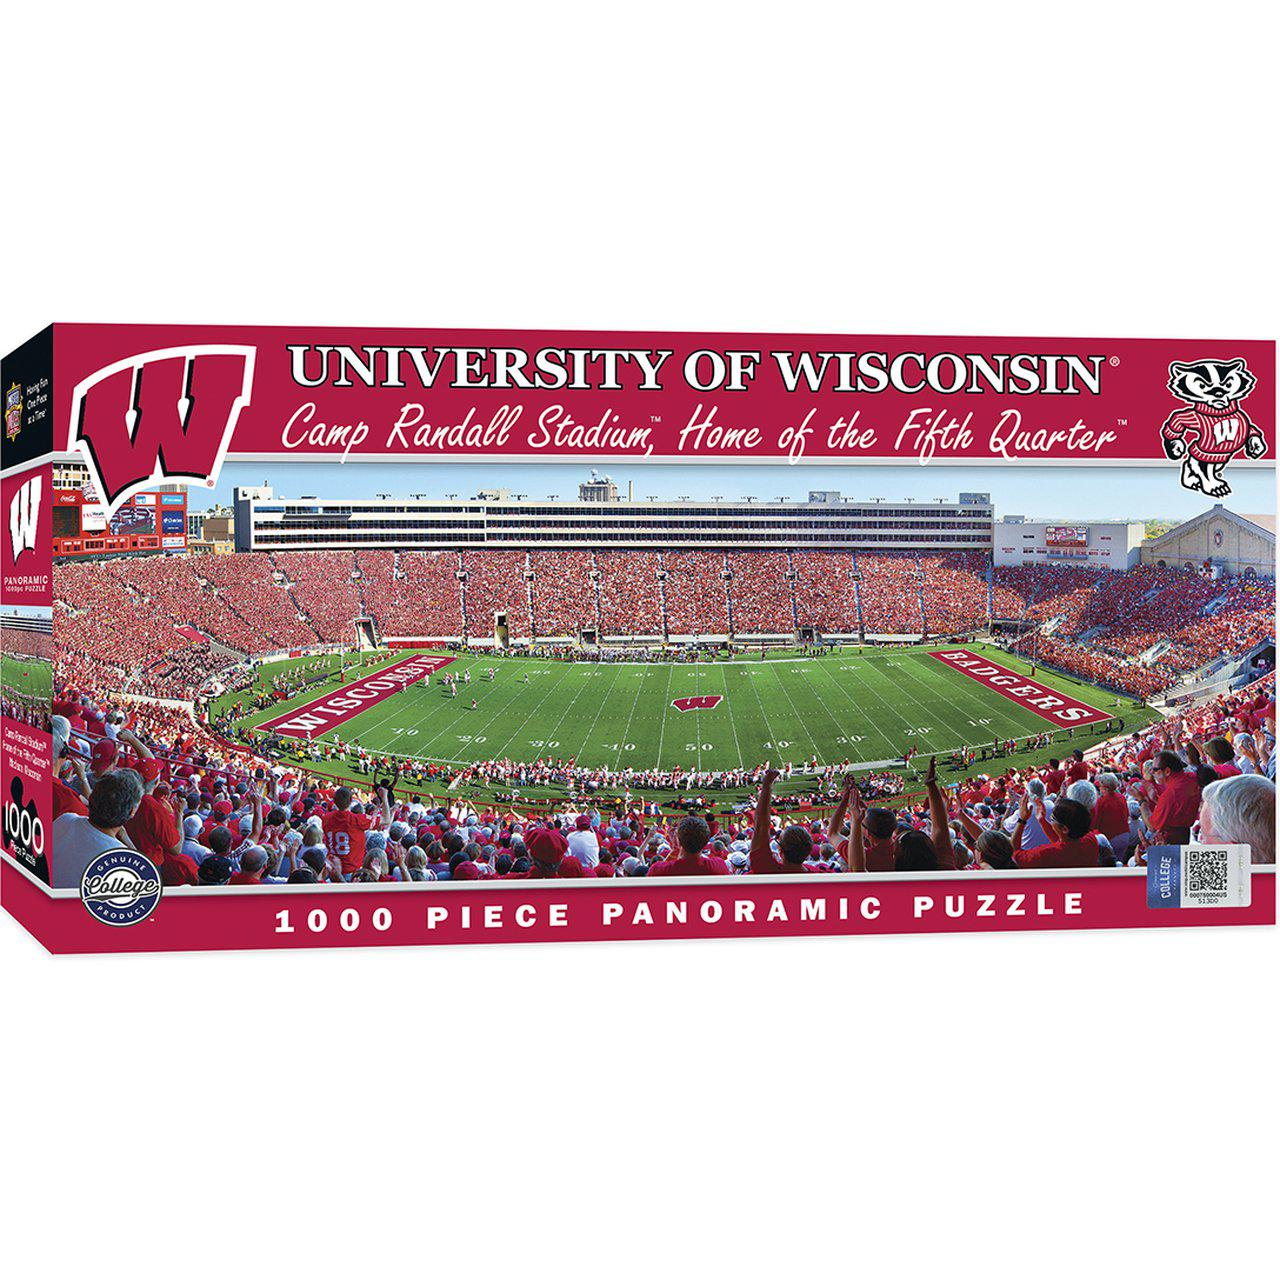 Wisconsin Badgers 1000 Piece Panoramic Stadium Jigsaw Puzzle-Puzzle-MasterPieces Puzzle Company-Top Notch Gift Shop